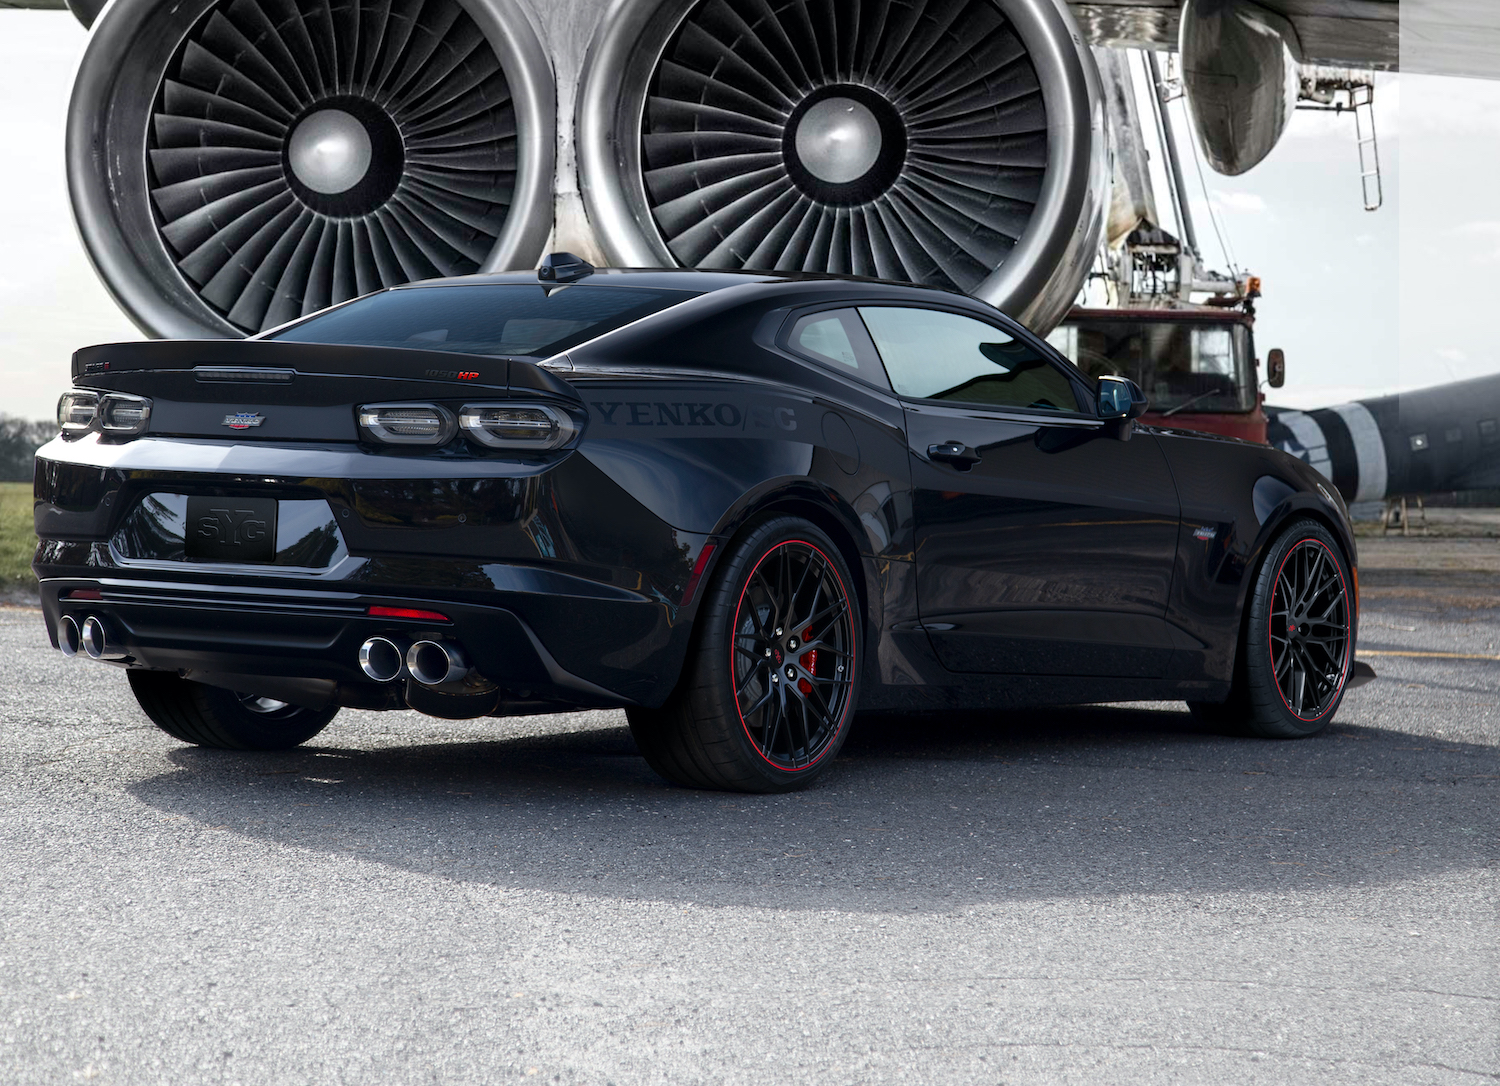 2021 yenko/sc stage 2 camaro from sve cranks out 1,050 hp